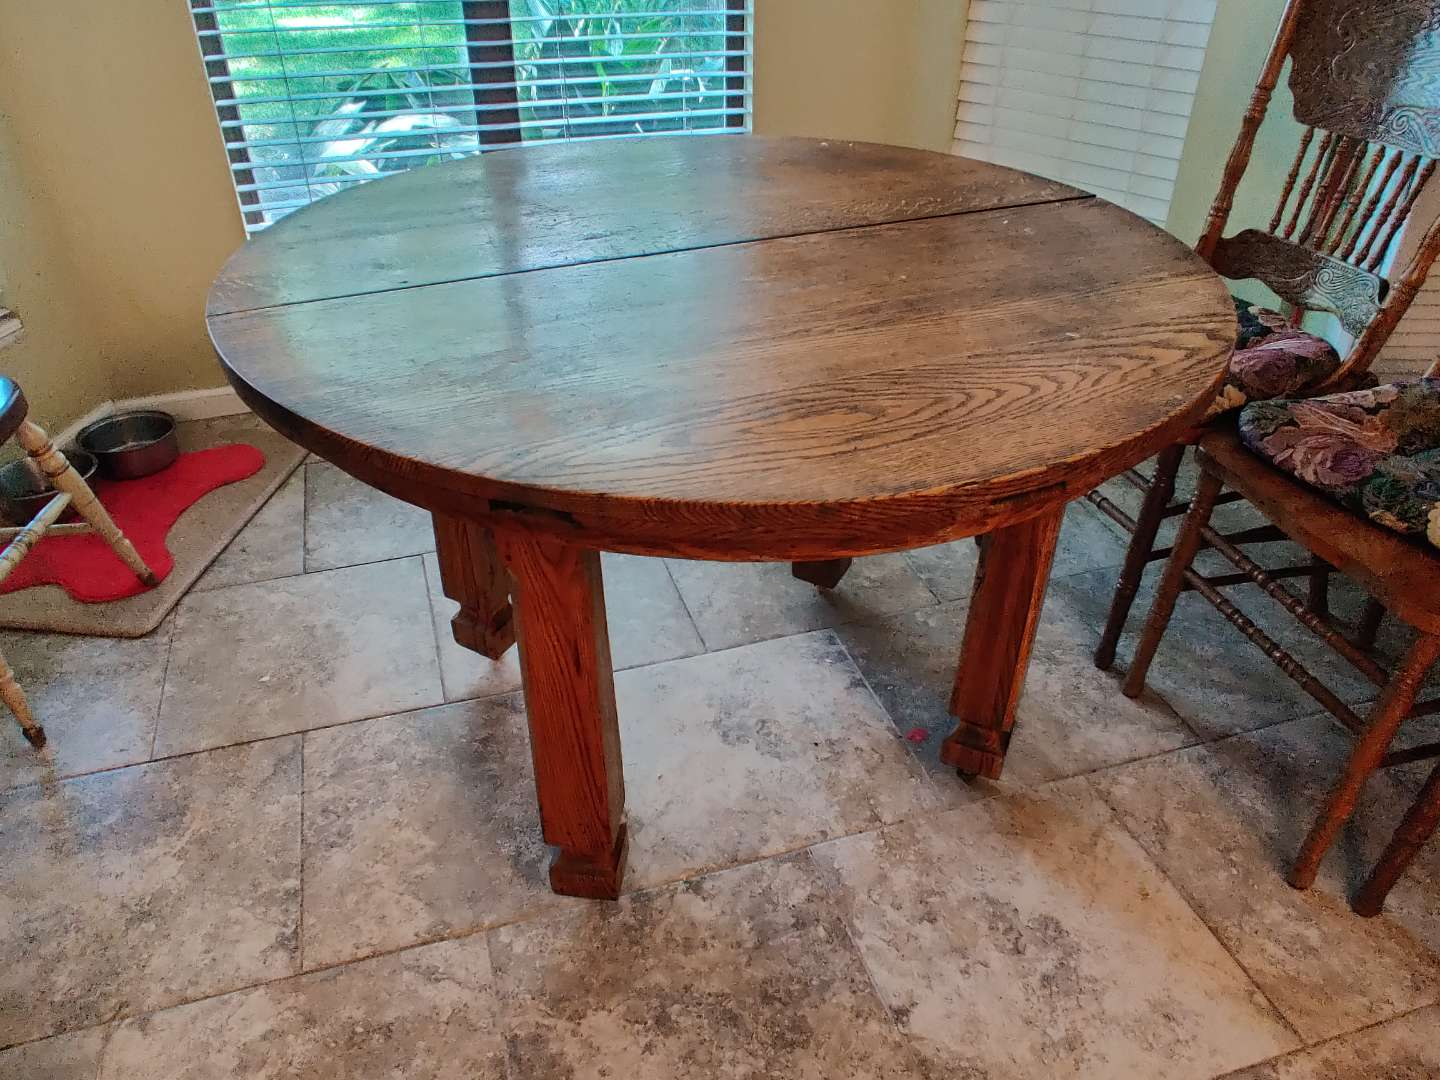 # 143 antique mission oak arts and crafts dining room table 45 inches wide